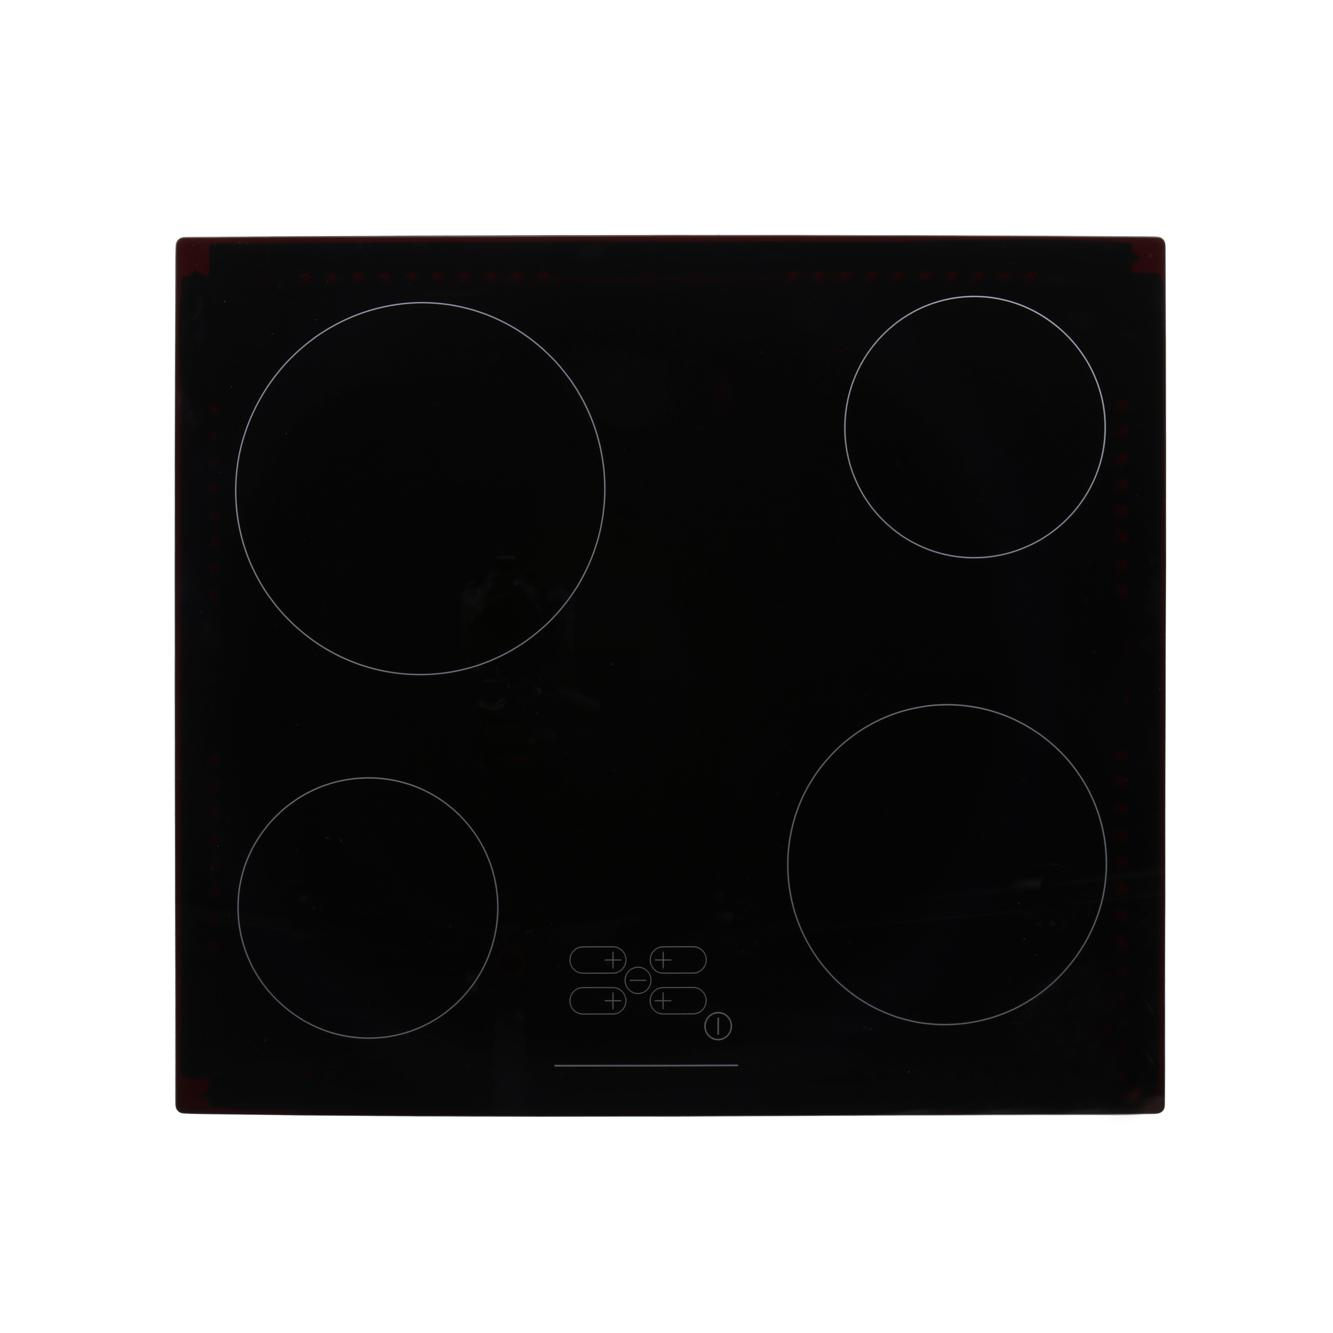 Buy Iberna Hhc609 Ceramic Hob Frameless Marks Electrical